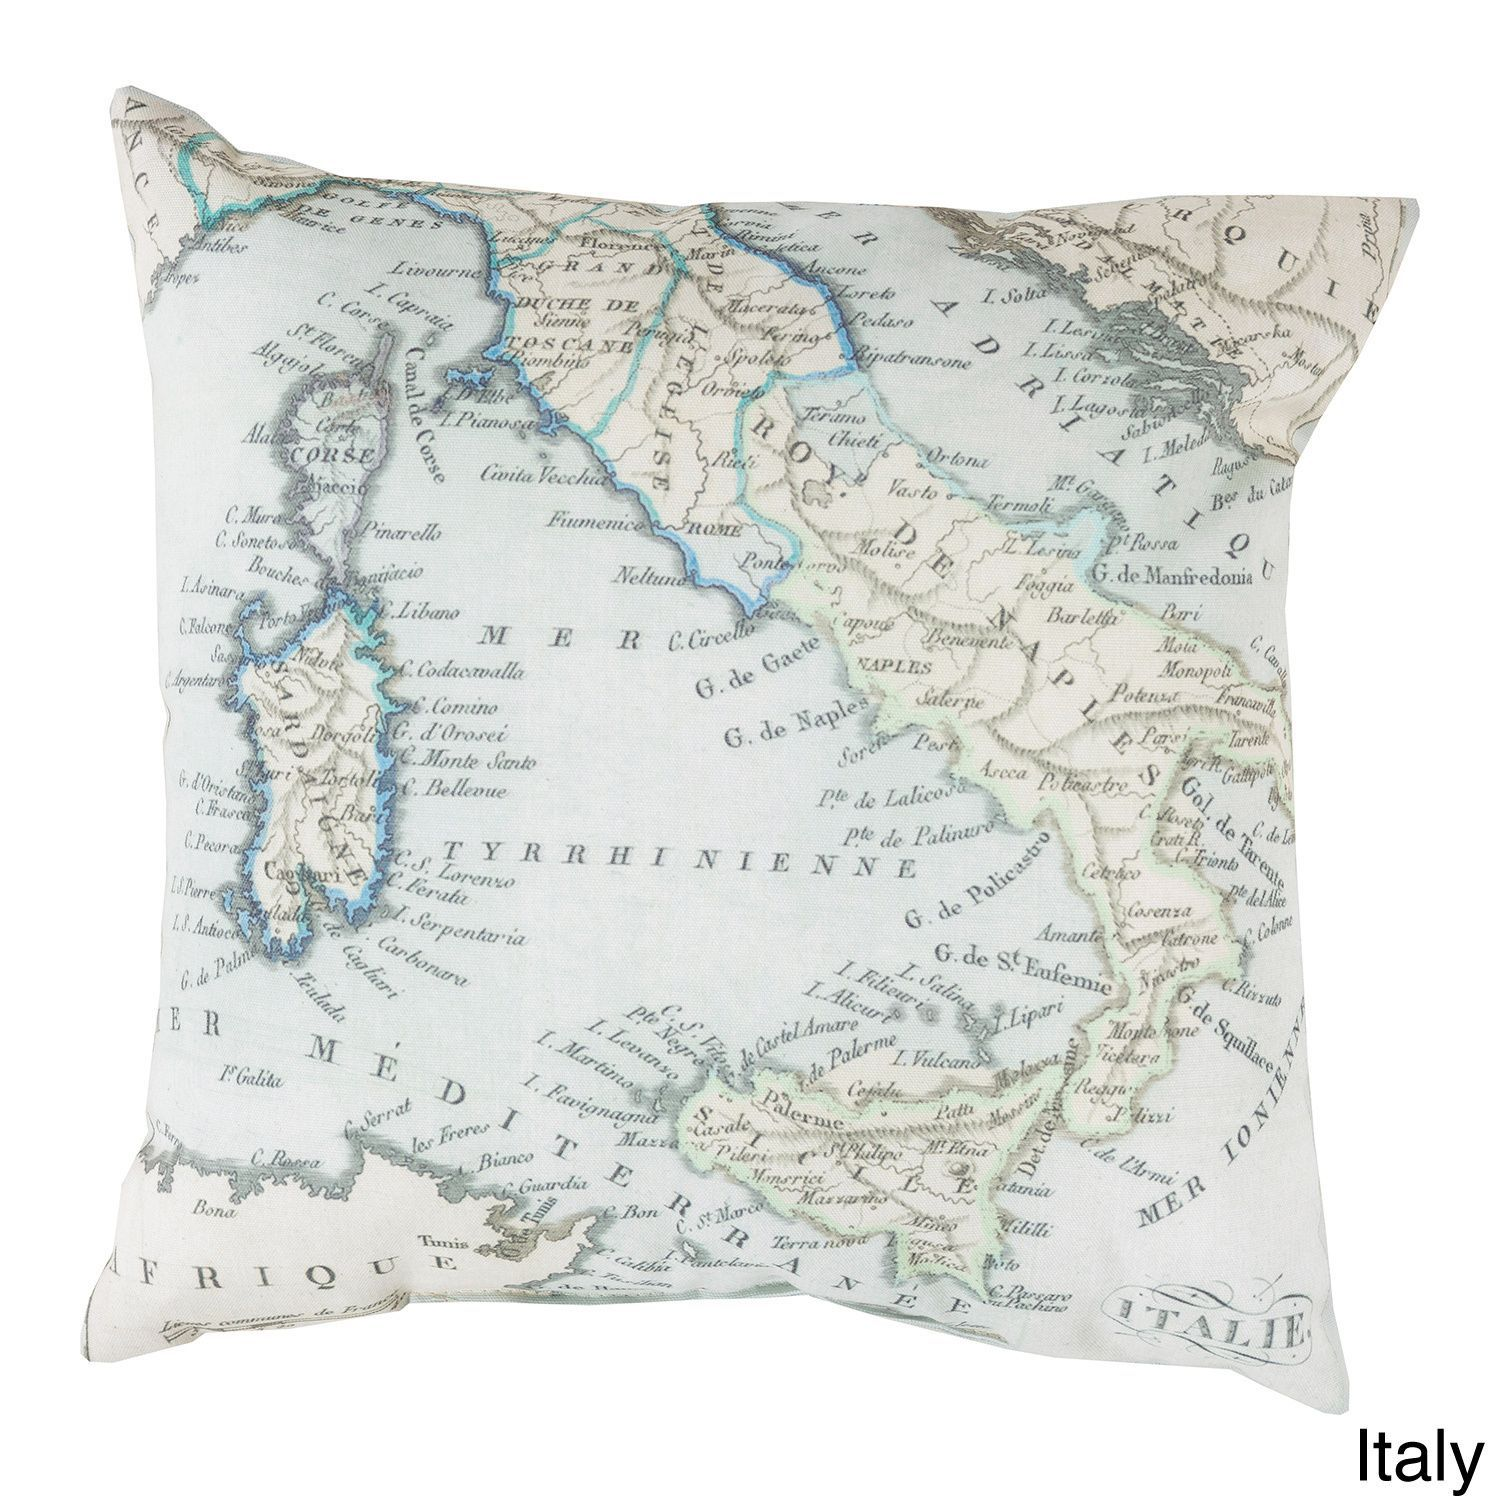 France Or Italy Map Indooroutdoor Decorative Throw Pillow (Italy